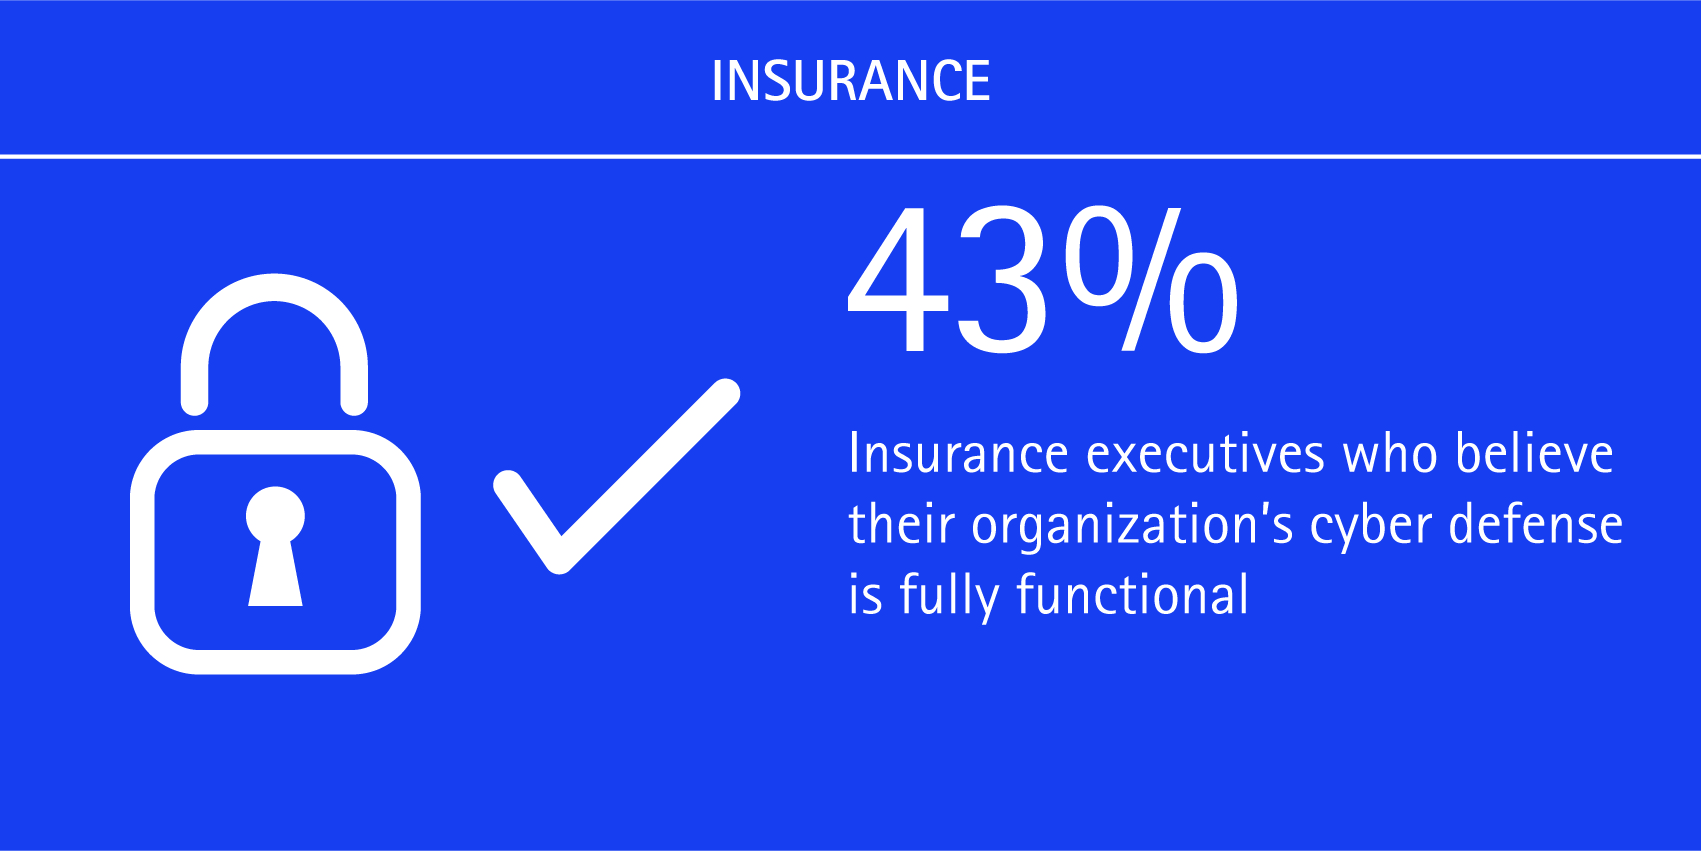 43% of insurance executives believe their organization's cyber defence is fully functional.